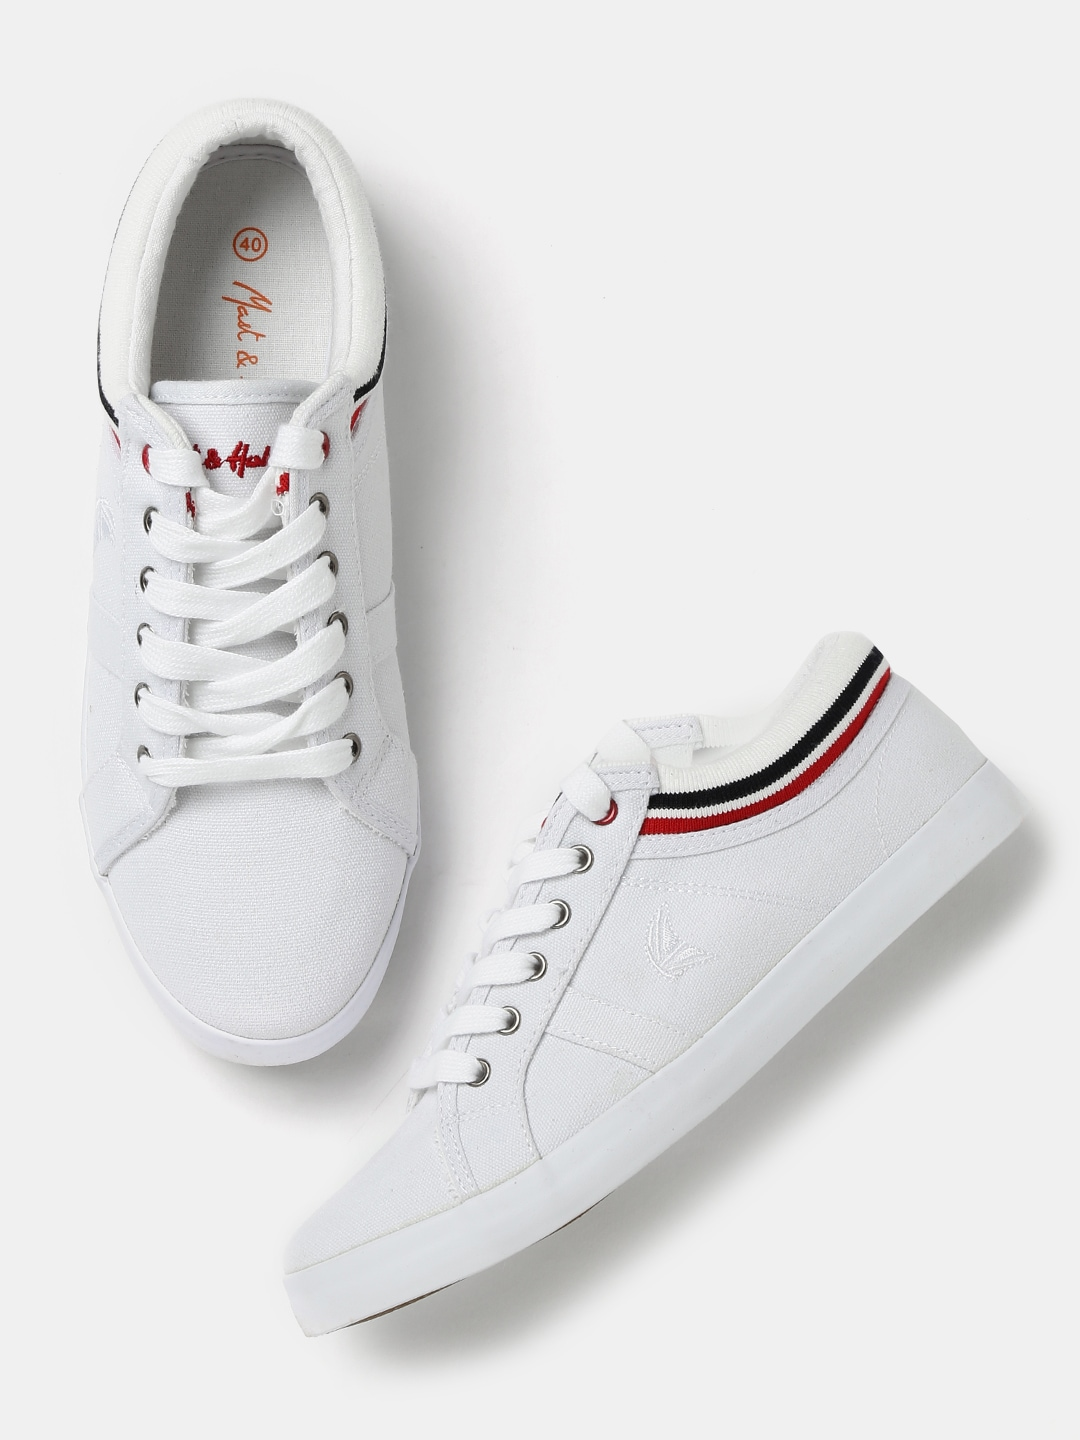 Mast  Harbour White Sneakers For Men Online In India At Best Price On -2474